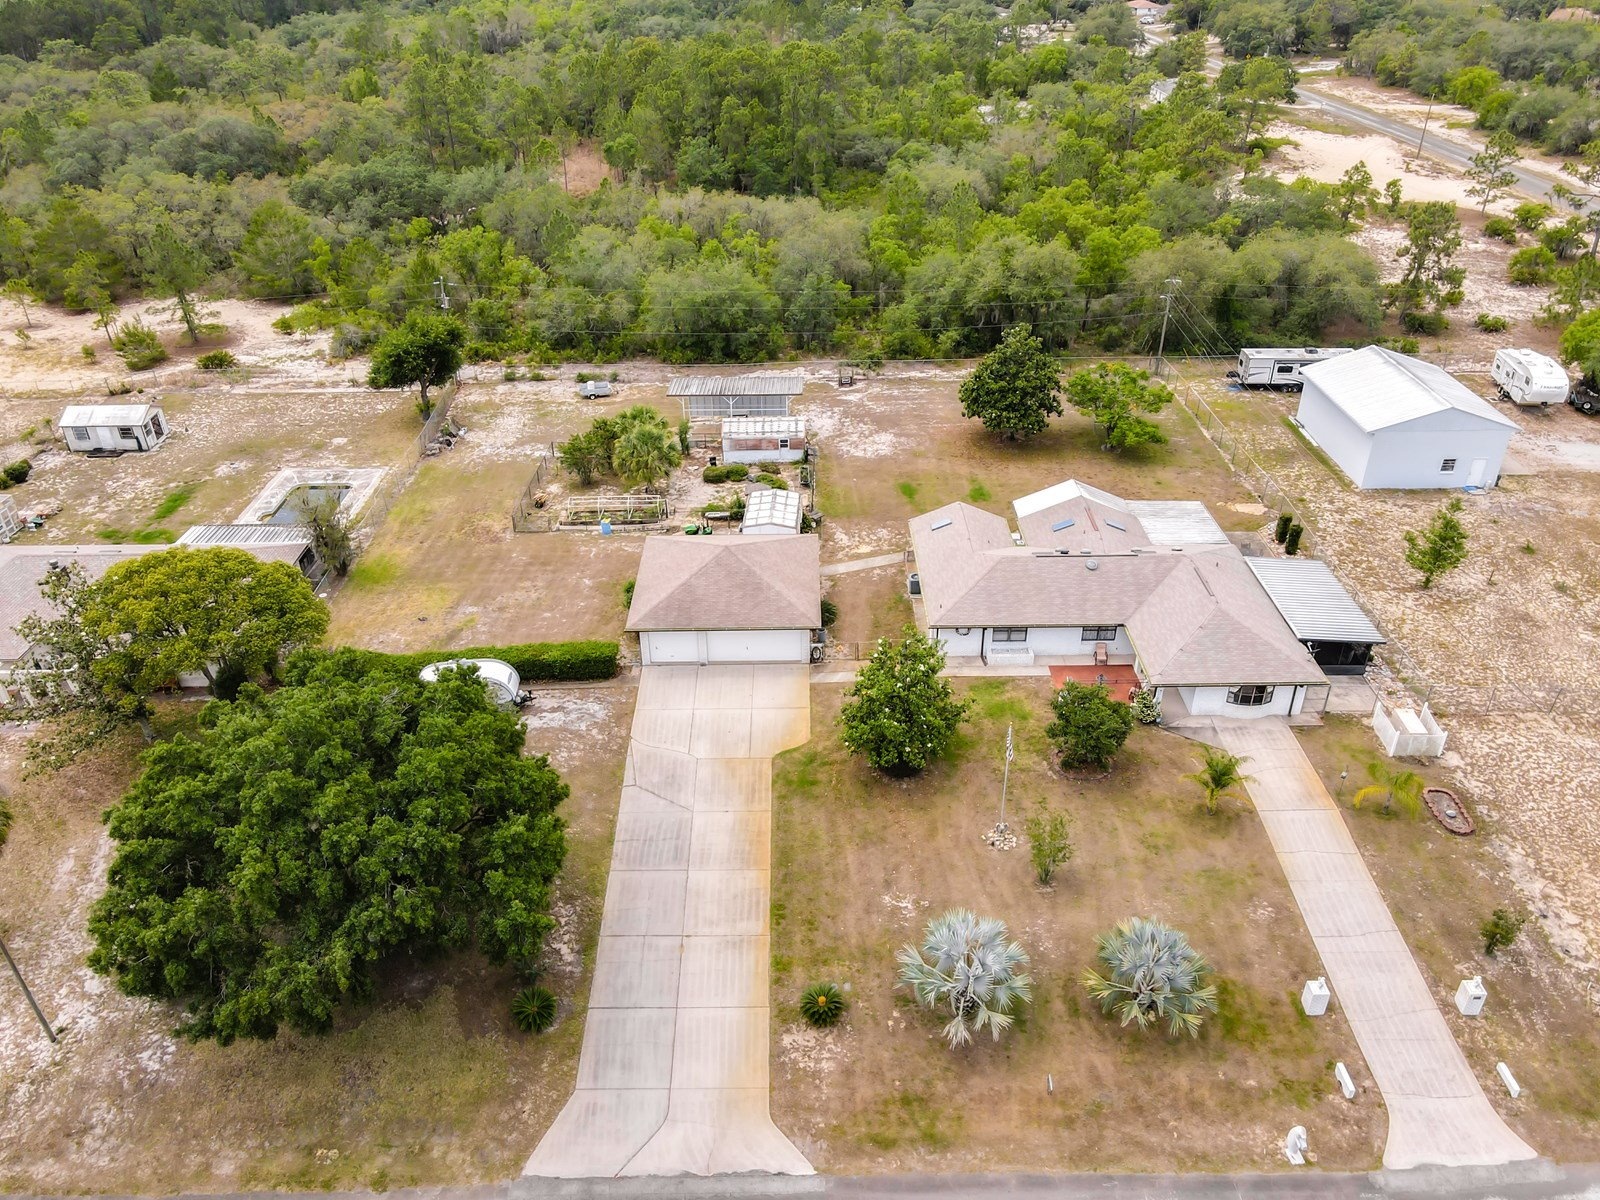 4/3 SINGLE FAMILY BLOCK HOME, CENTRAL FLORIDA, LAKE ACCESS